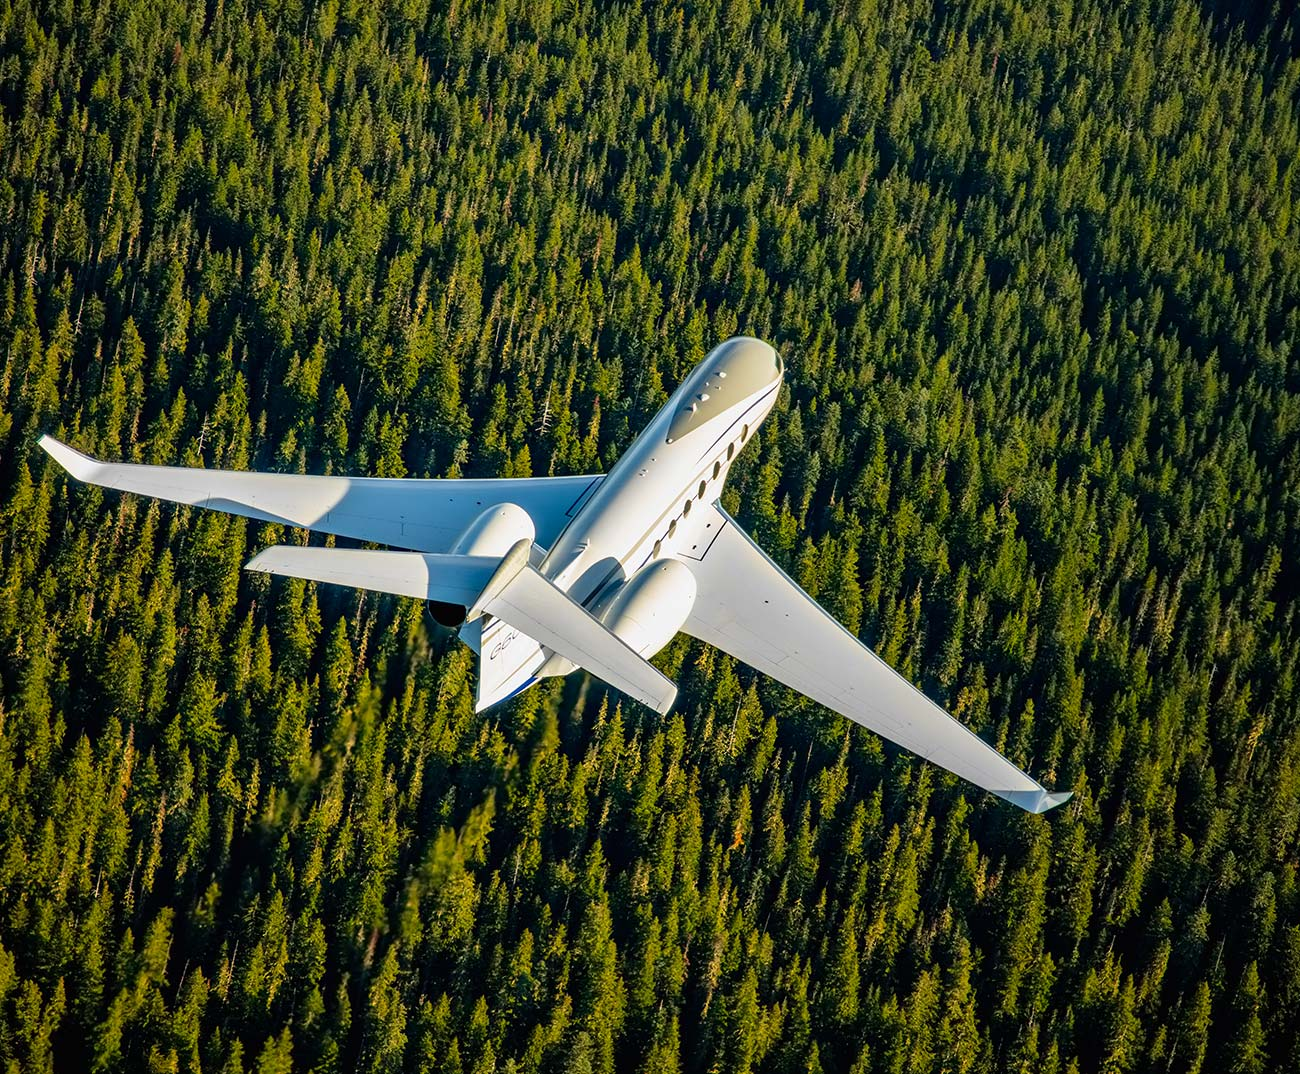 Gulfstream aircraft flying over green trees